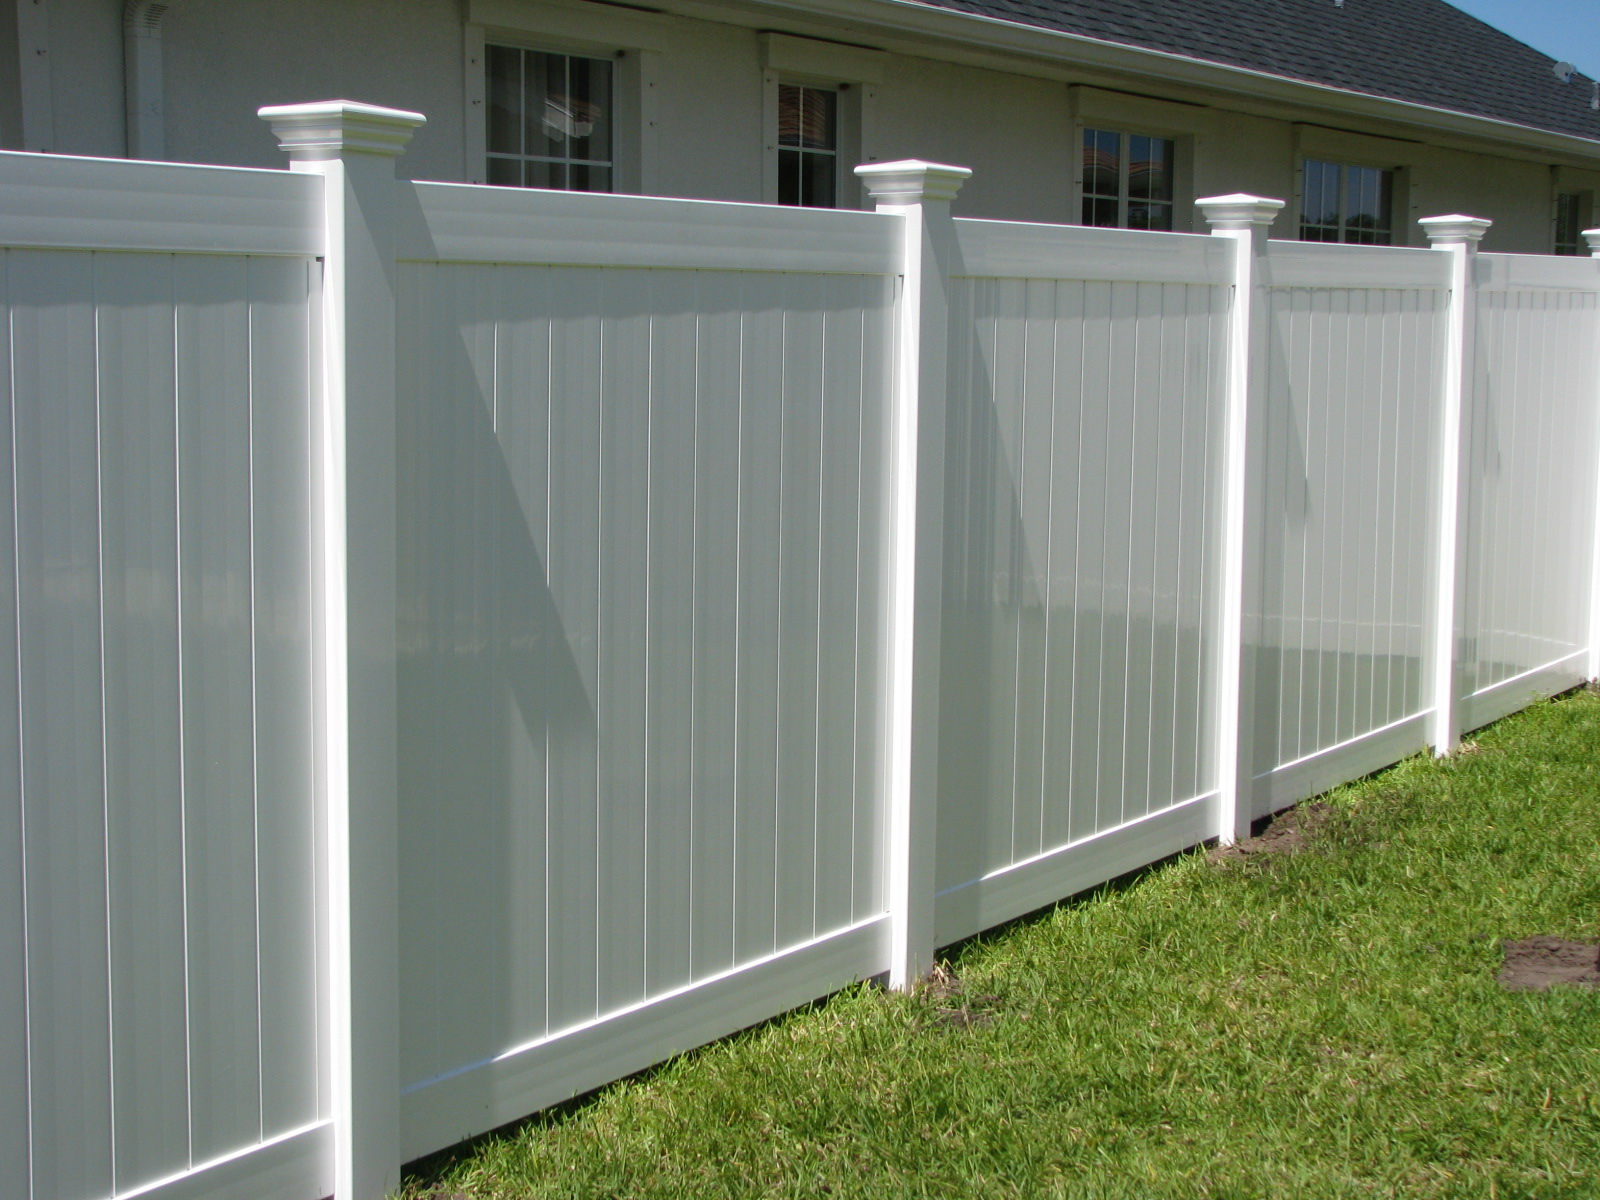 Fence Wonderful 6 Foot Vinyl Privacy Fence Freedom Ready To throughout sizing 1600 X 1200